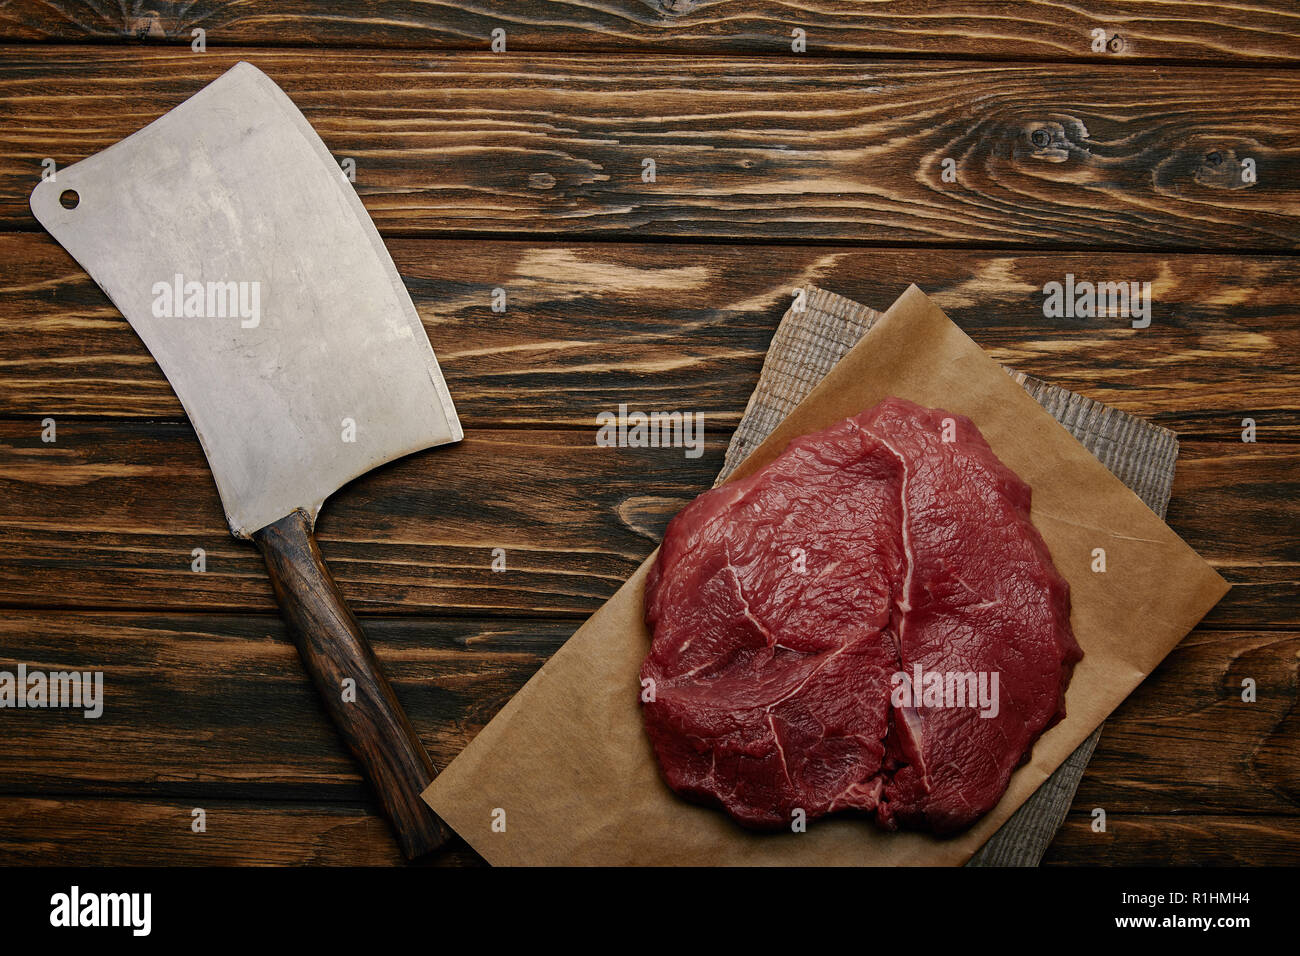 top view of raw meat on baking paper with butcher knife on wooden background - Stock Image